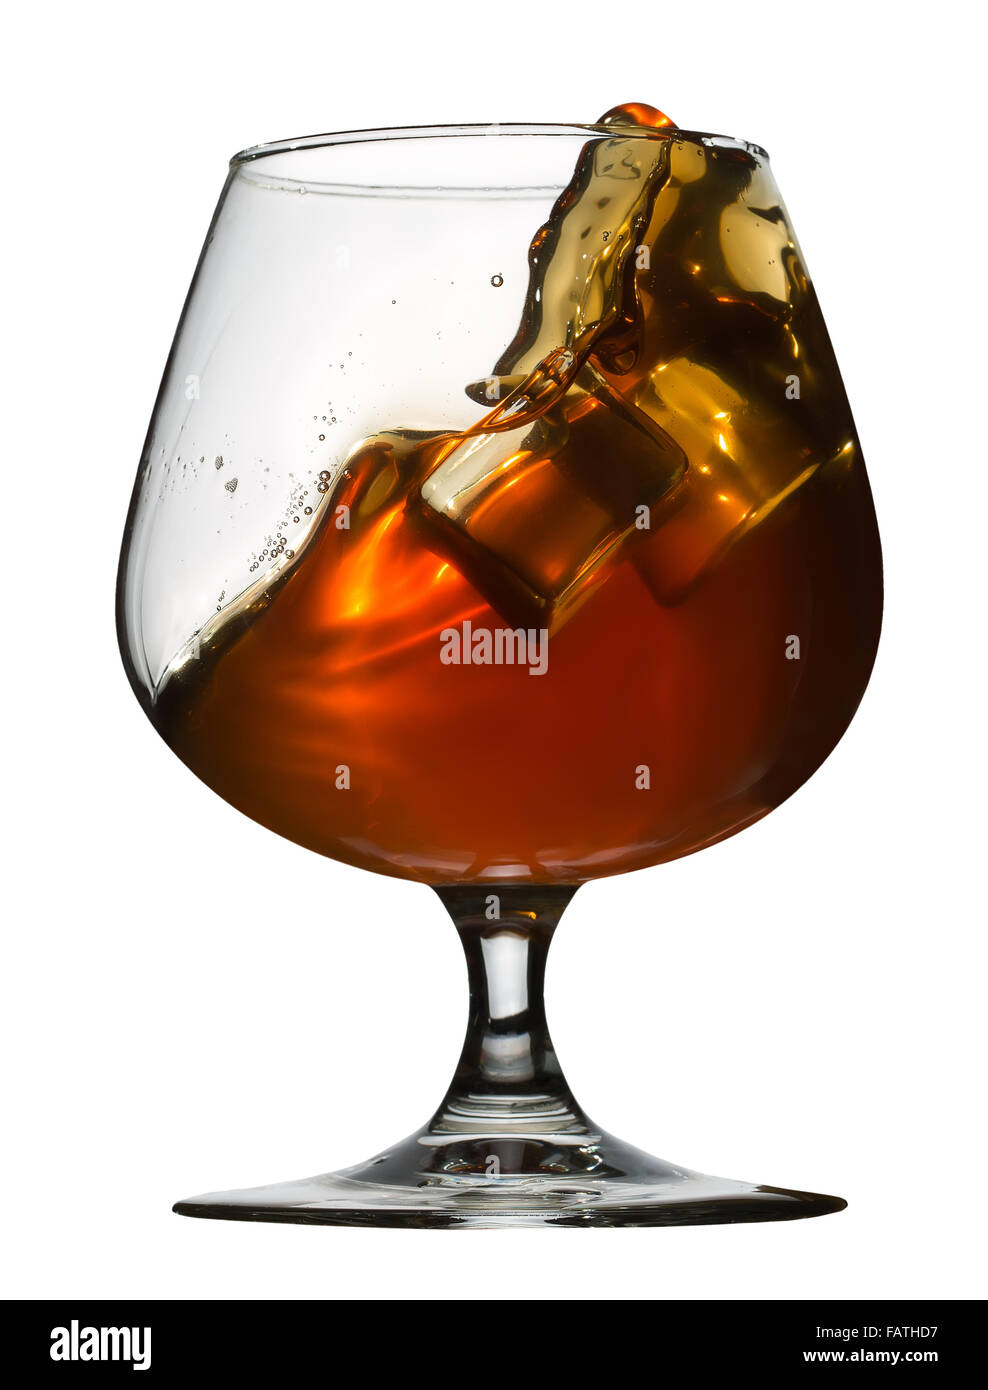 glass of brandy isolated on white background. Stock Photo